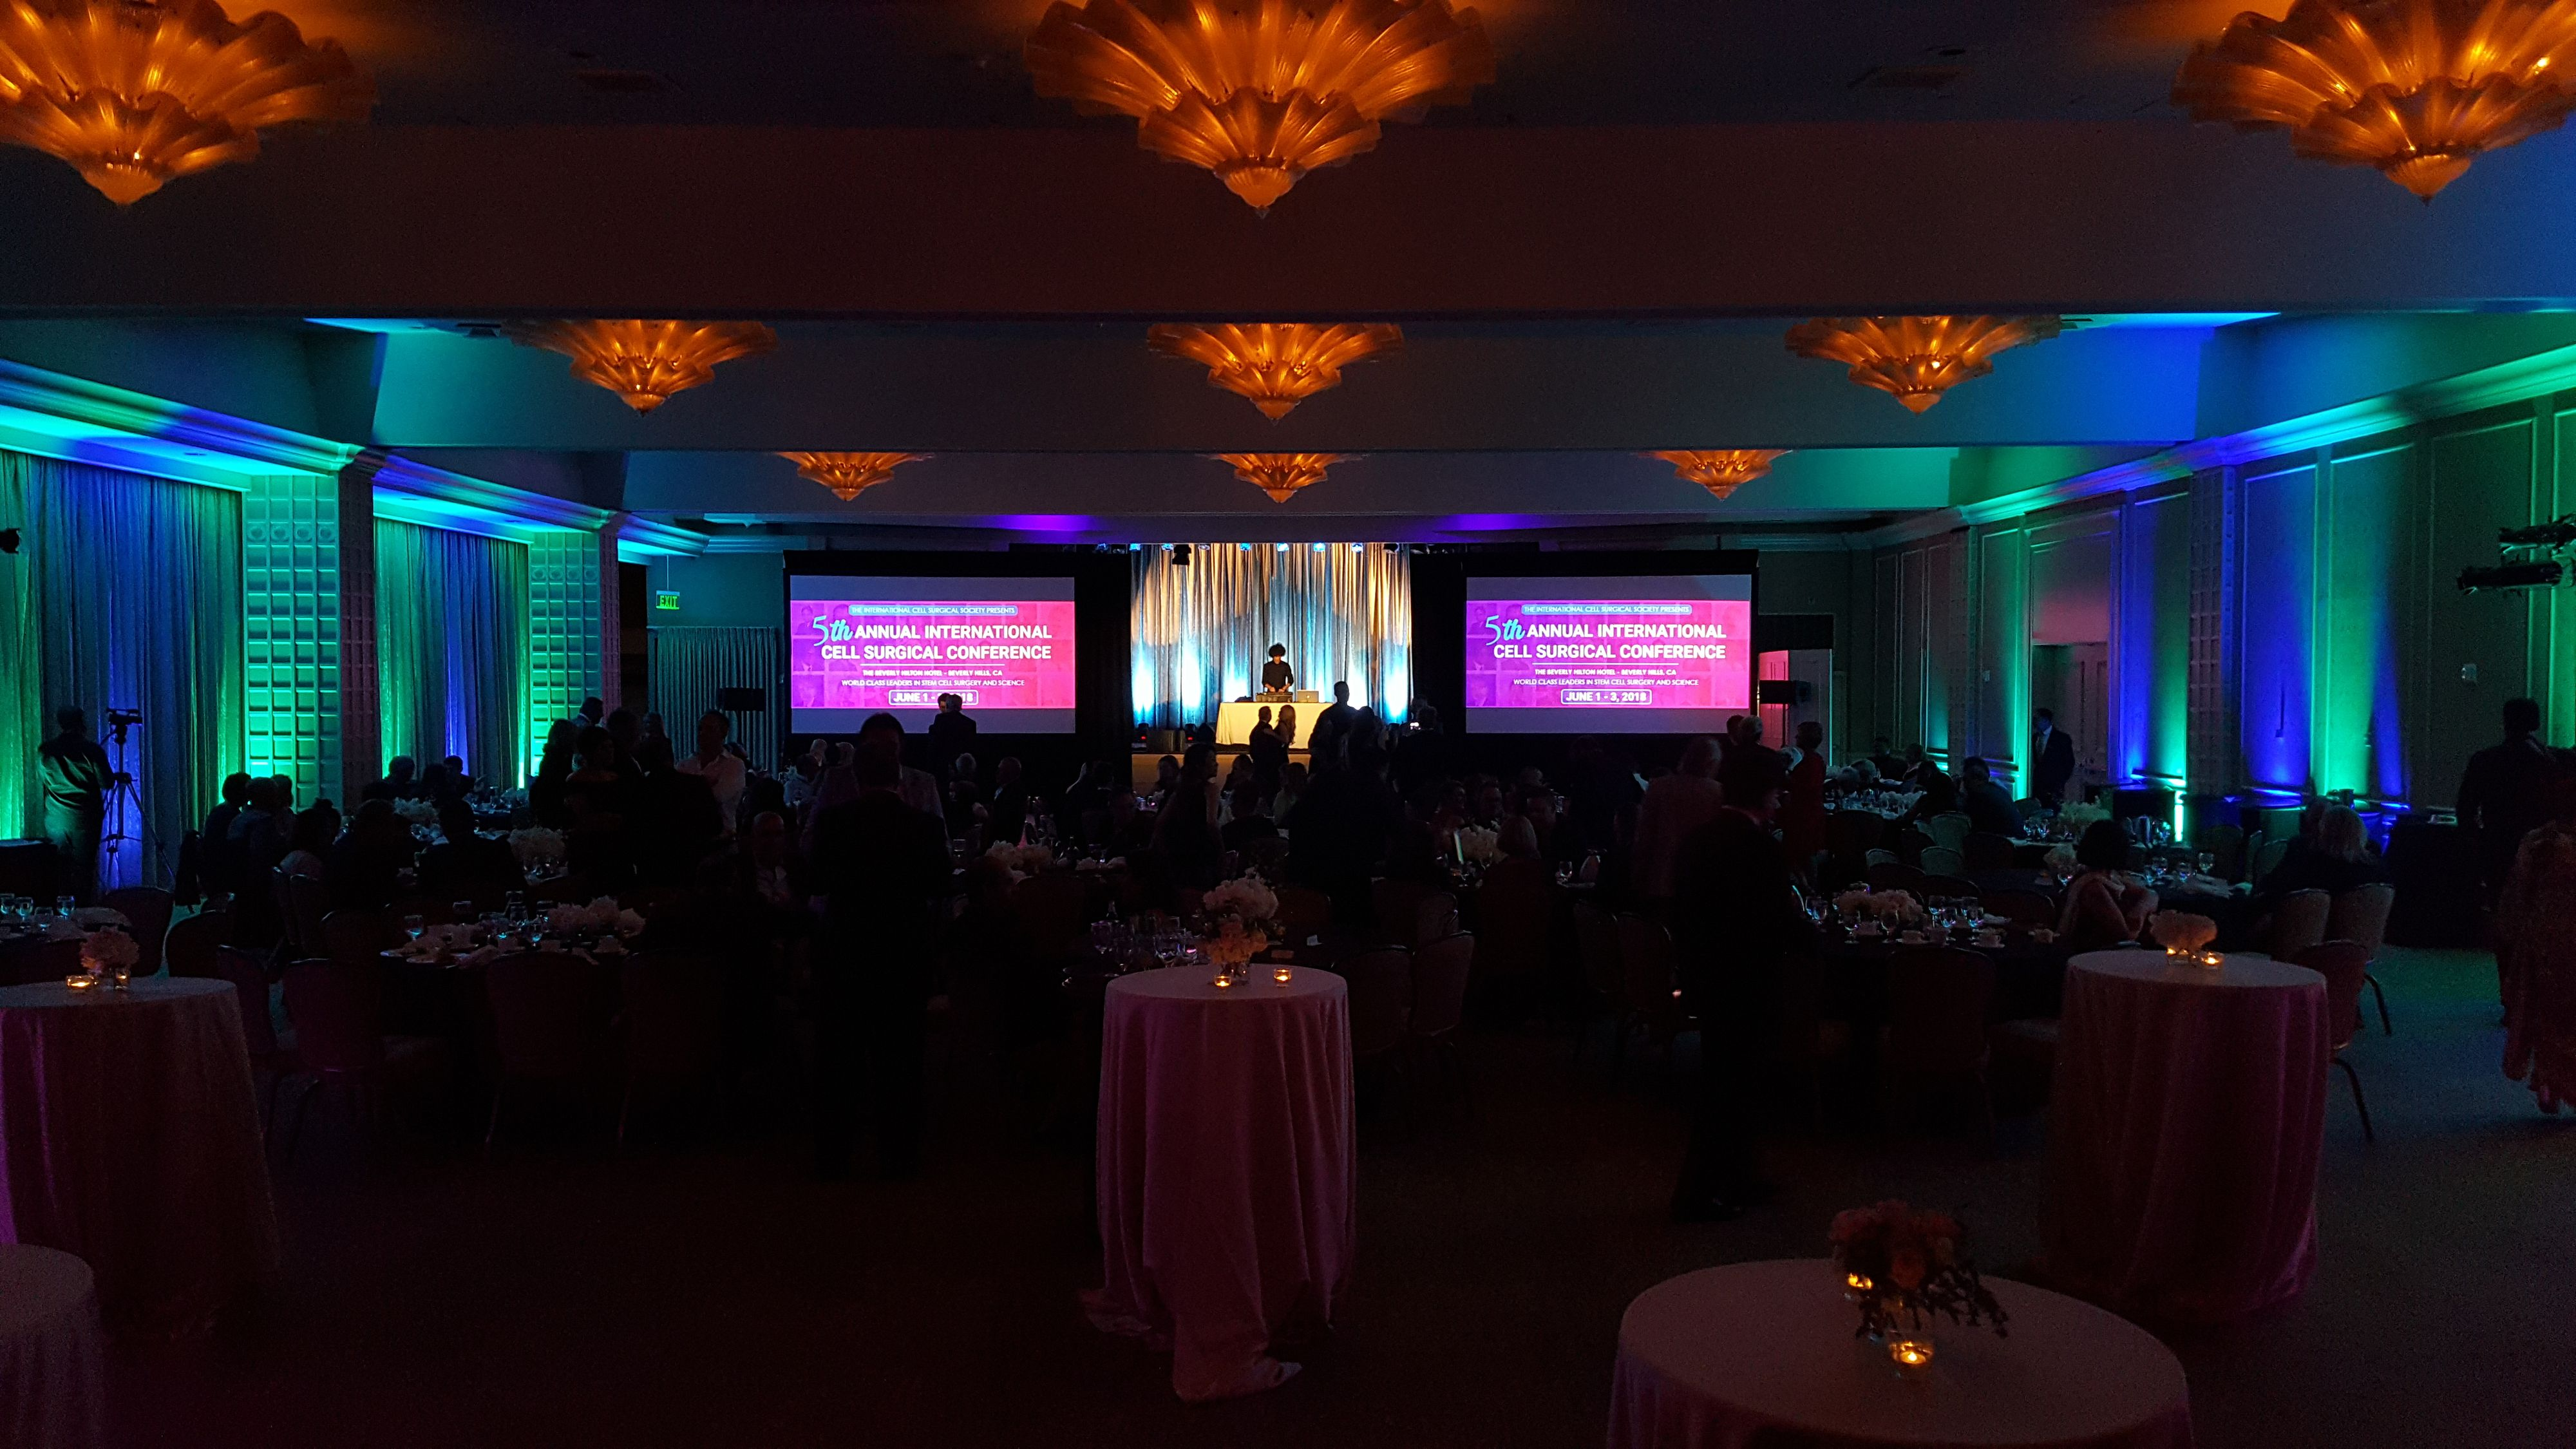 Gala in ballroom with blue and green lighting